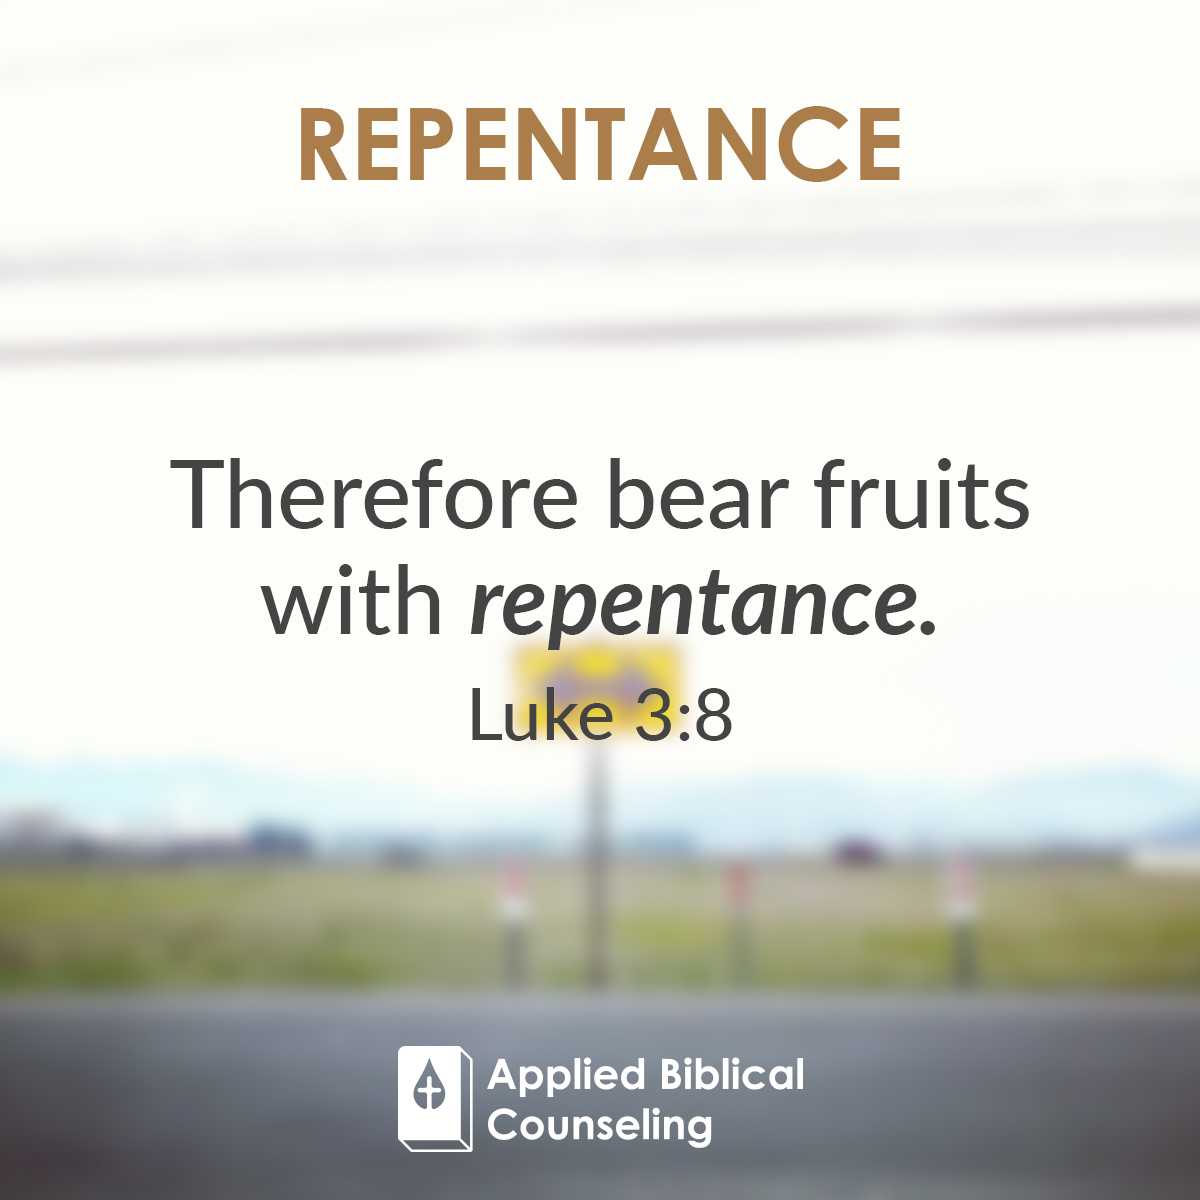 Applied Biblical Counseling Facebook w19 Repentance 5